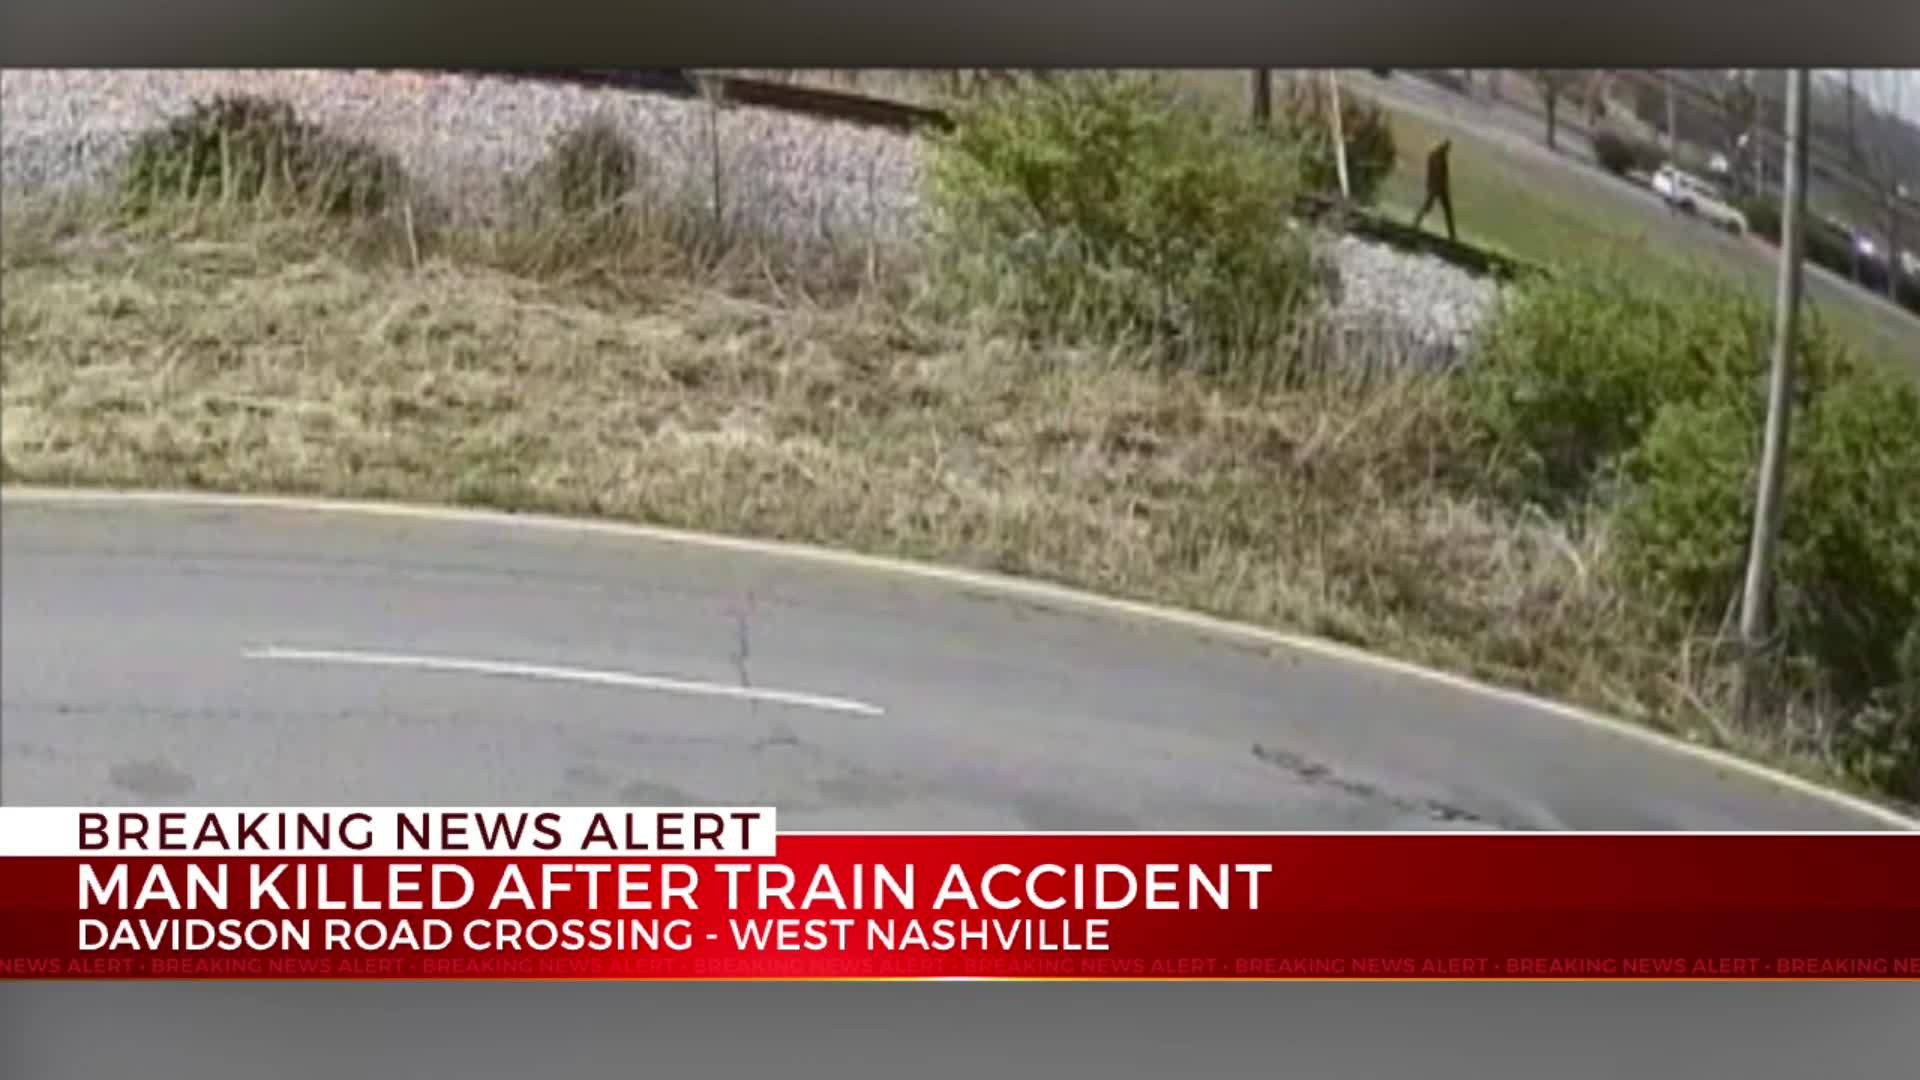 Man killed after train accident